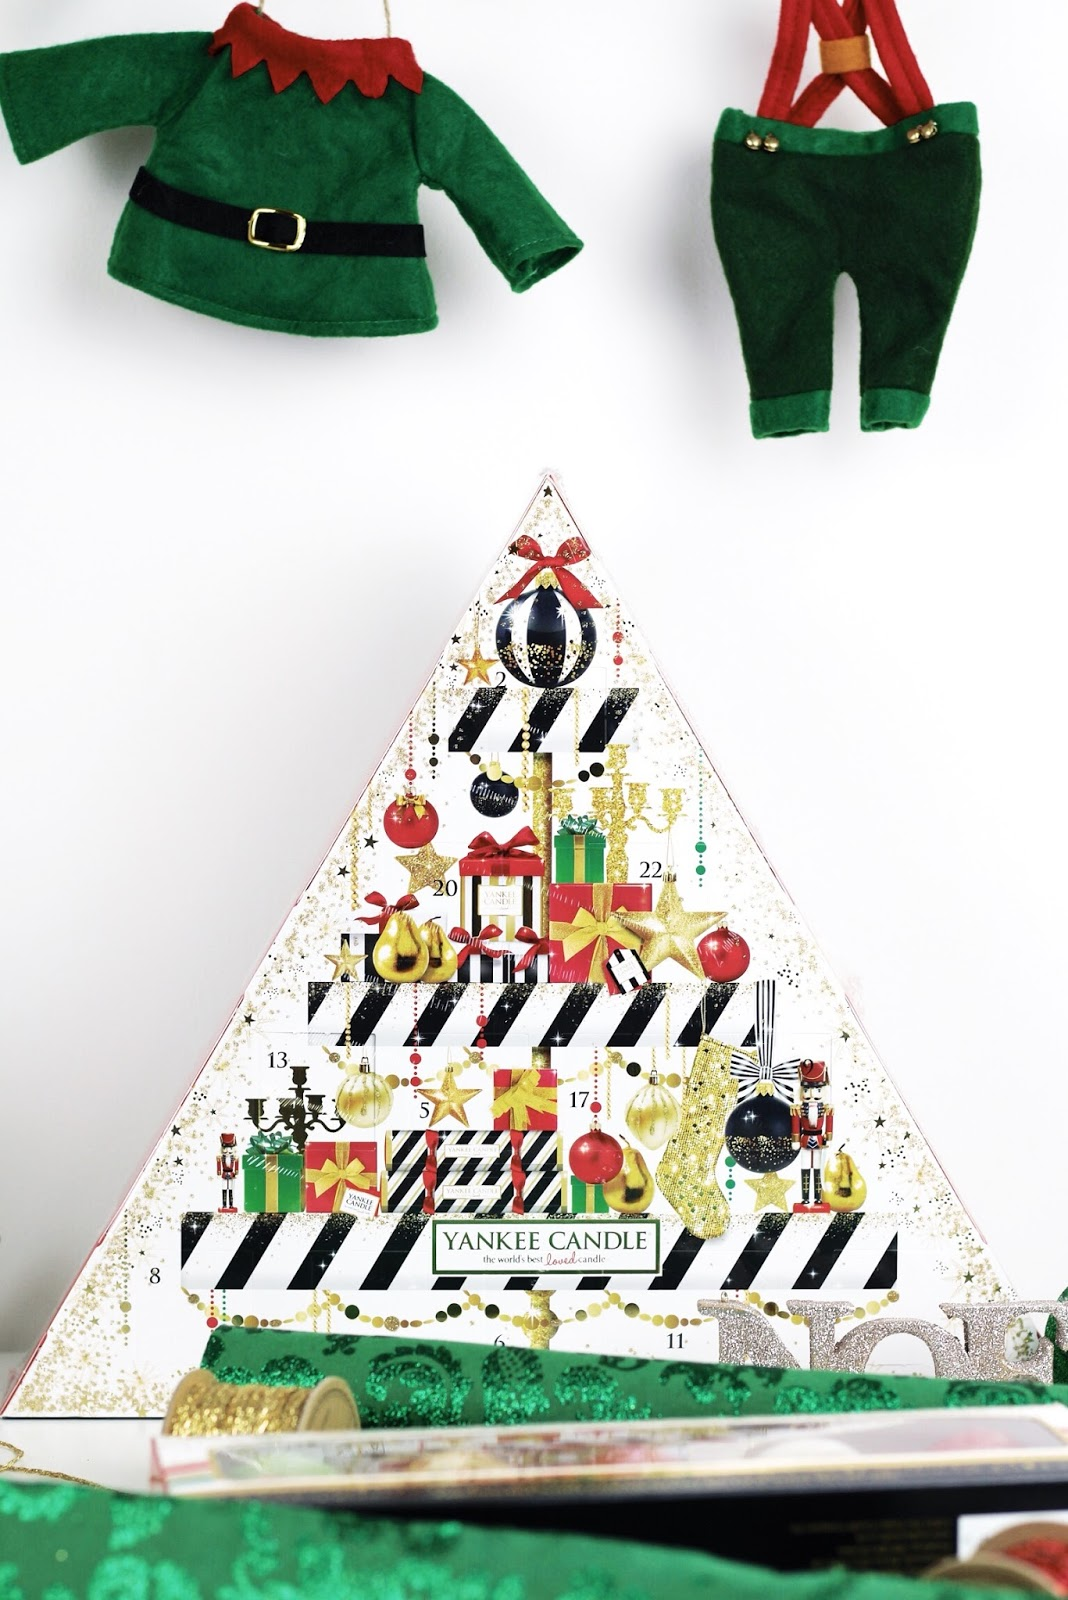 Yankee Candle 2016 Advent Calendar triangle